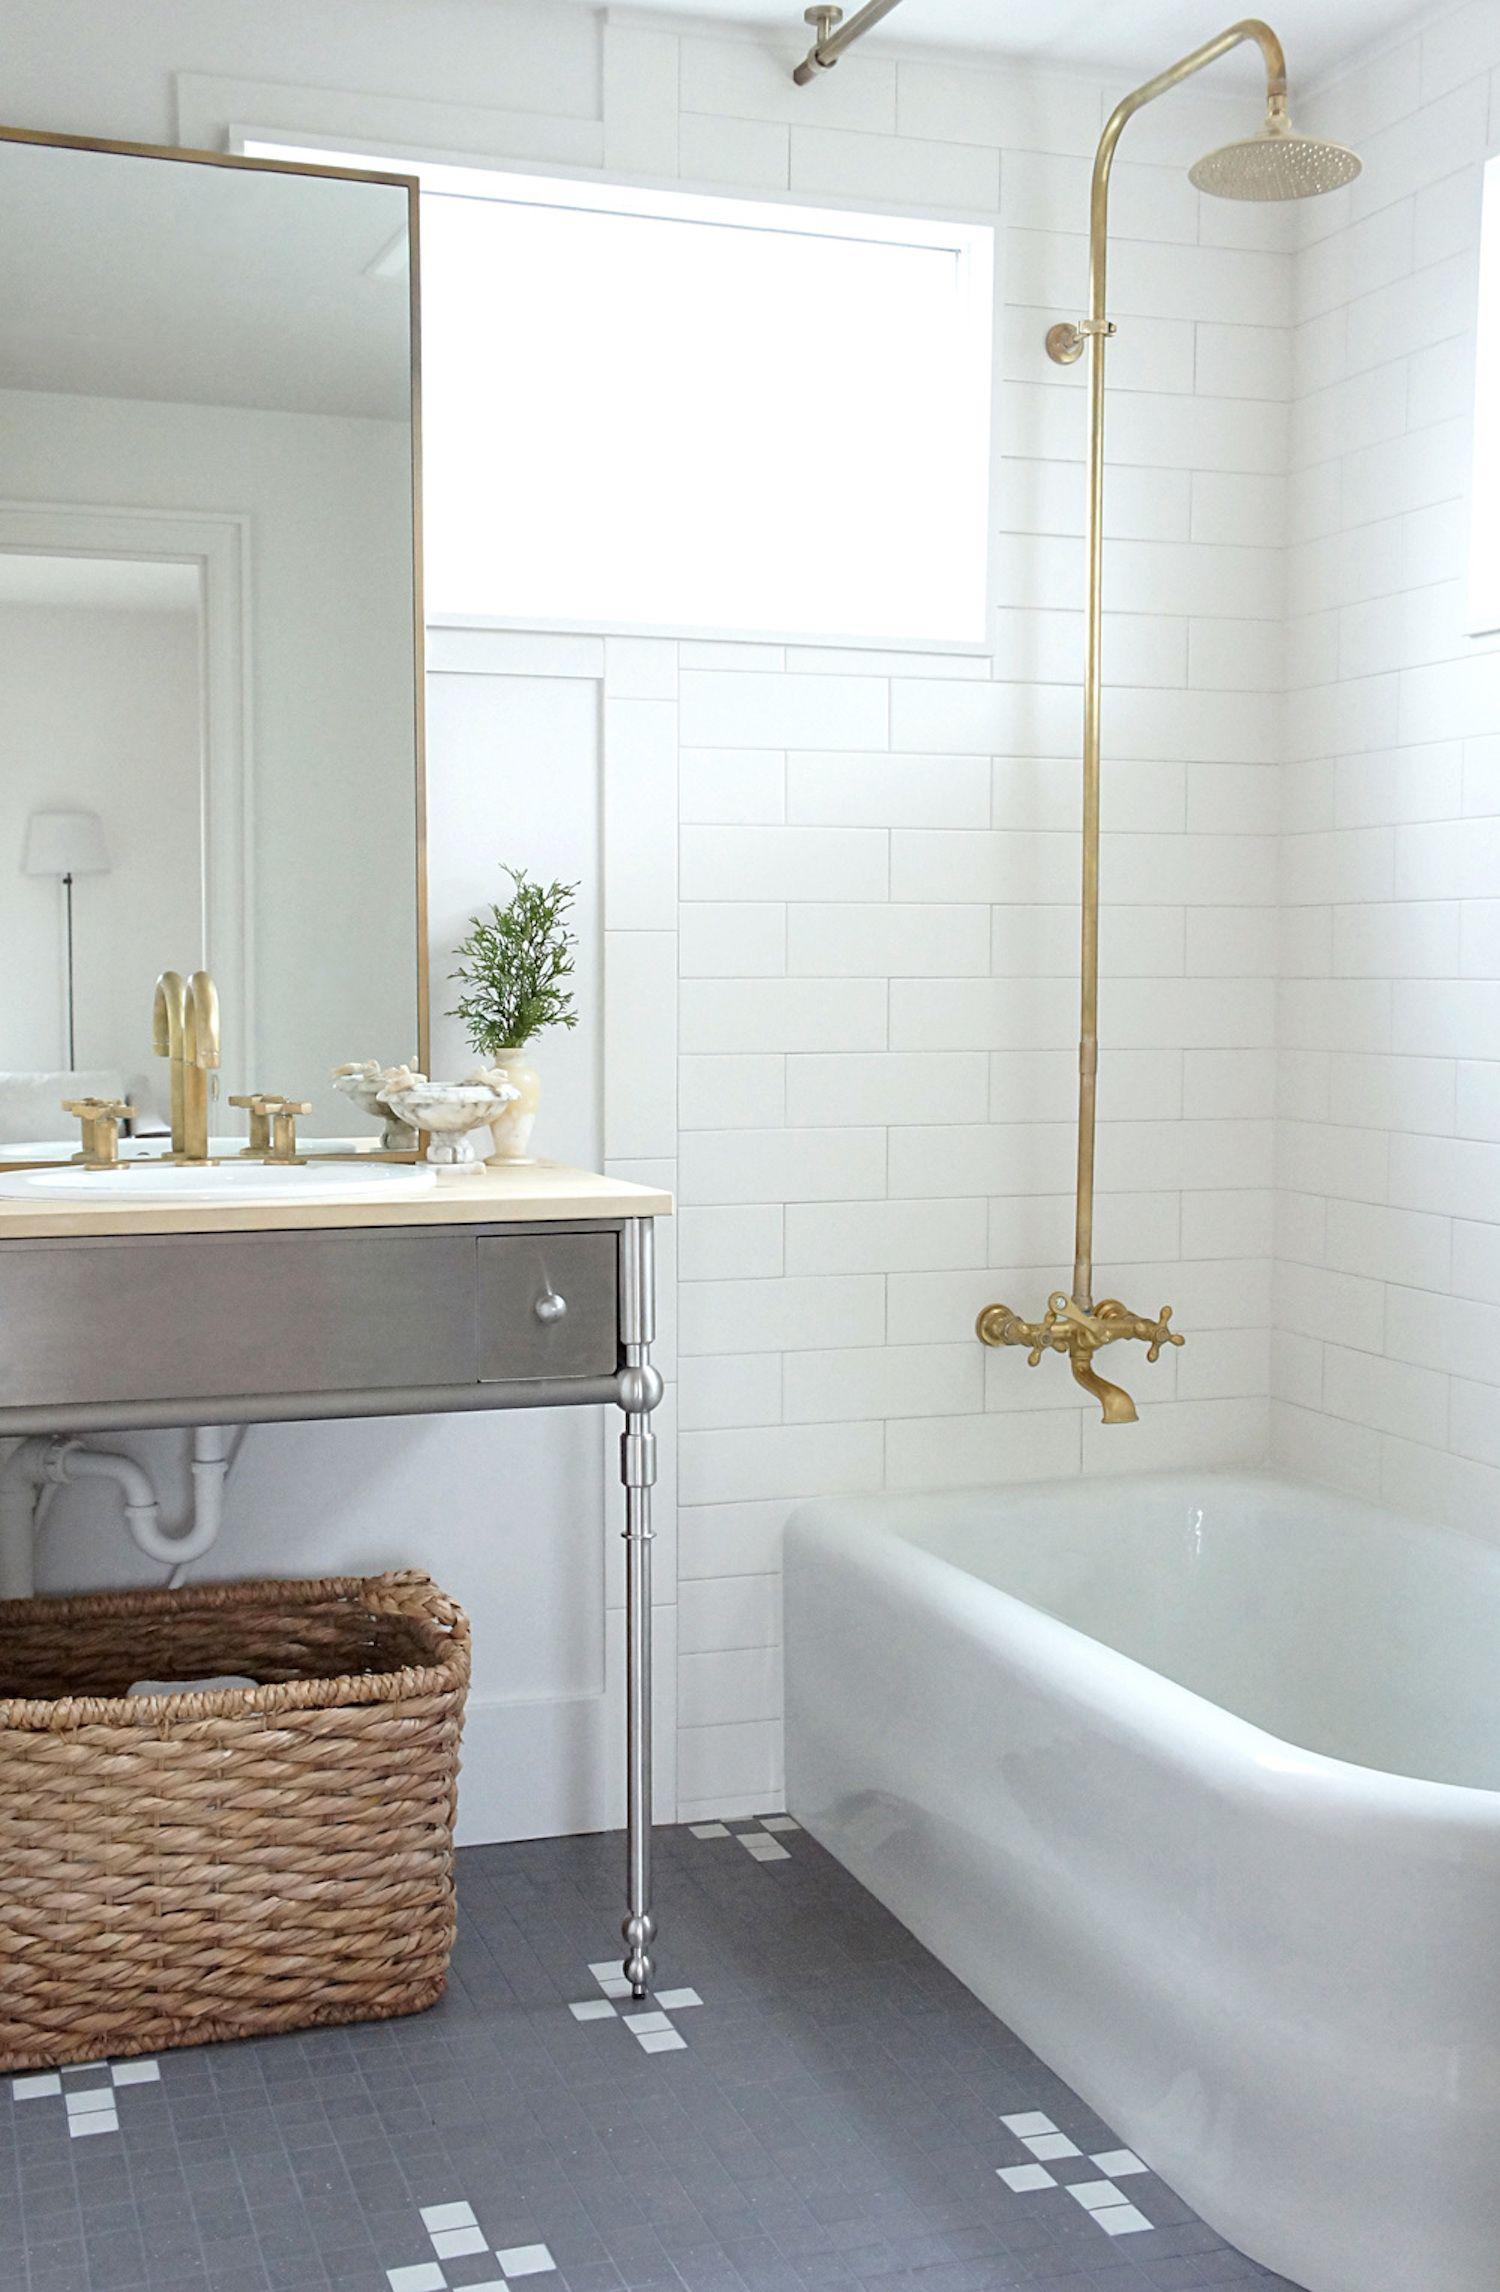 Emerson Home by MAKE-KING | Emerson, White tiles and Tile flooring